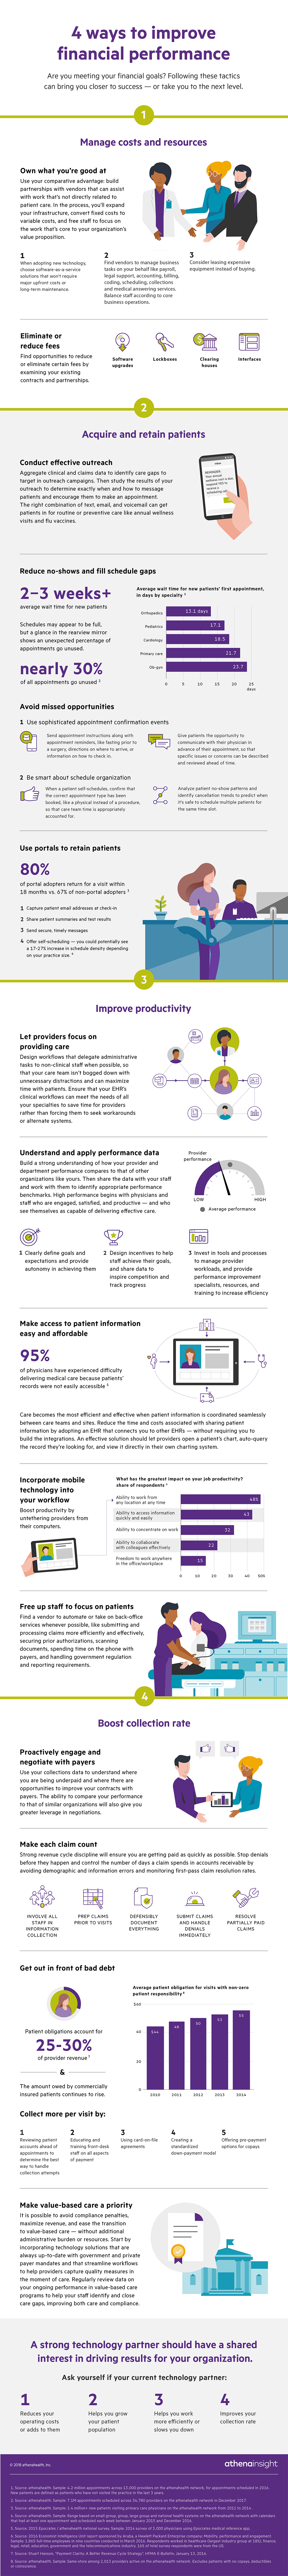 finanical_performance_ROI infographic